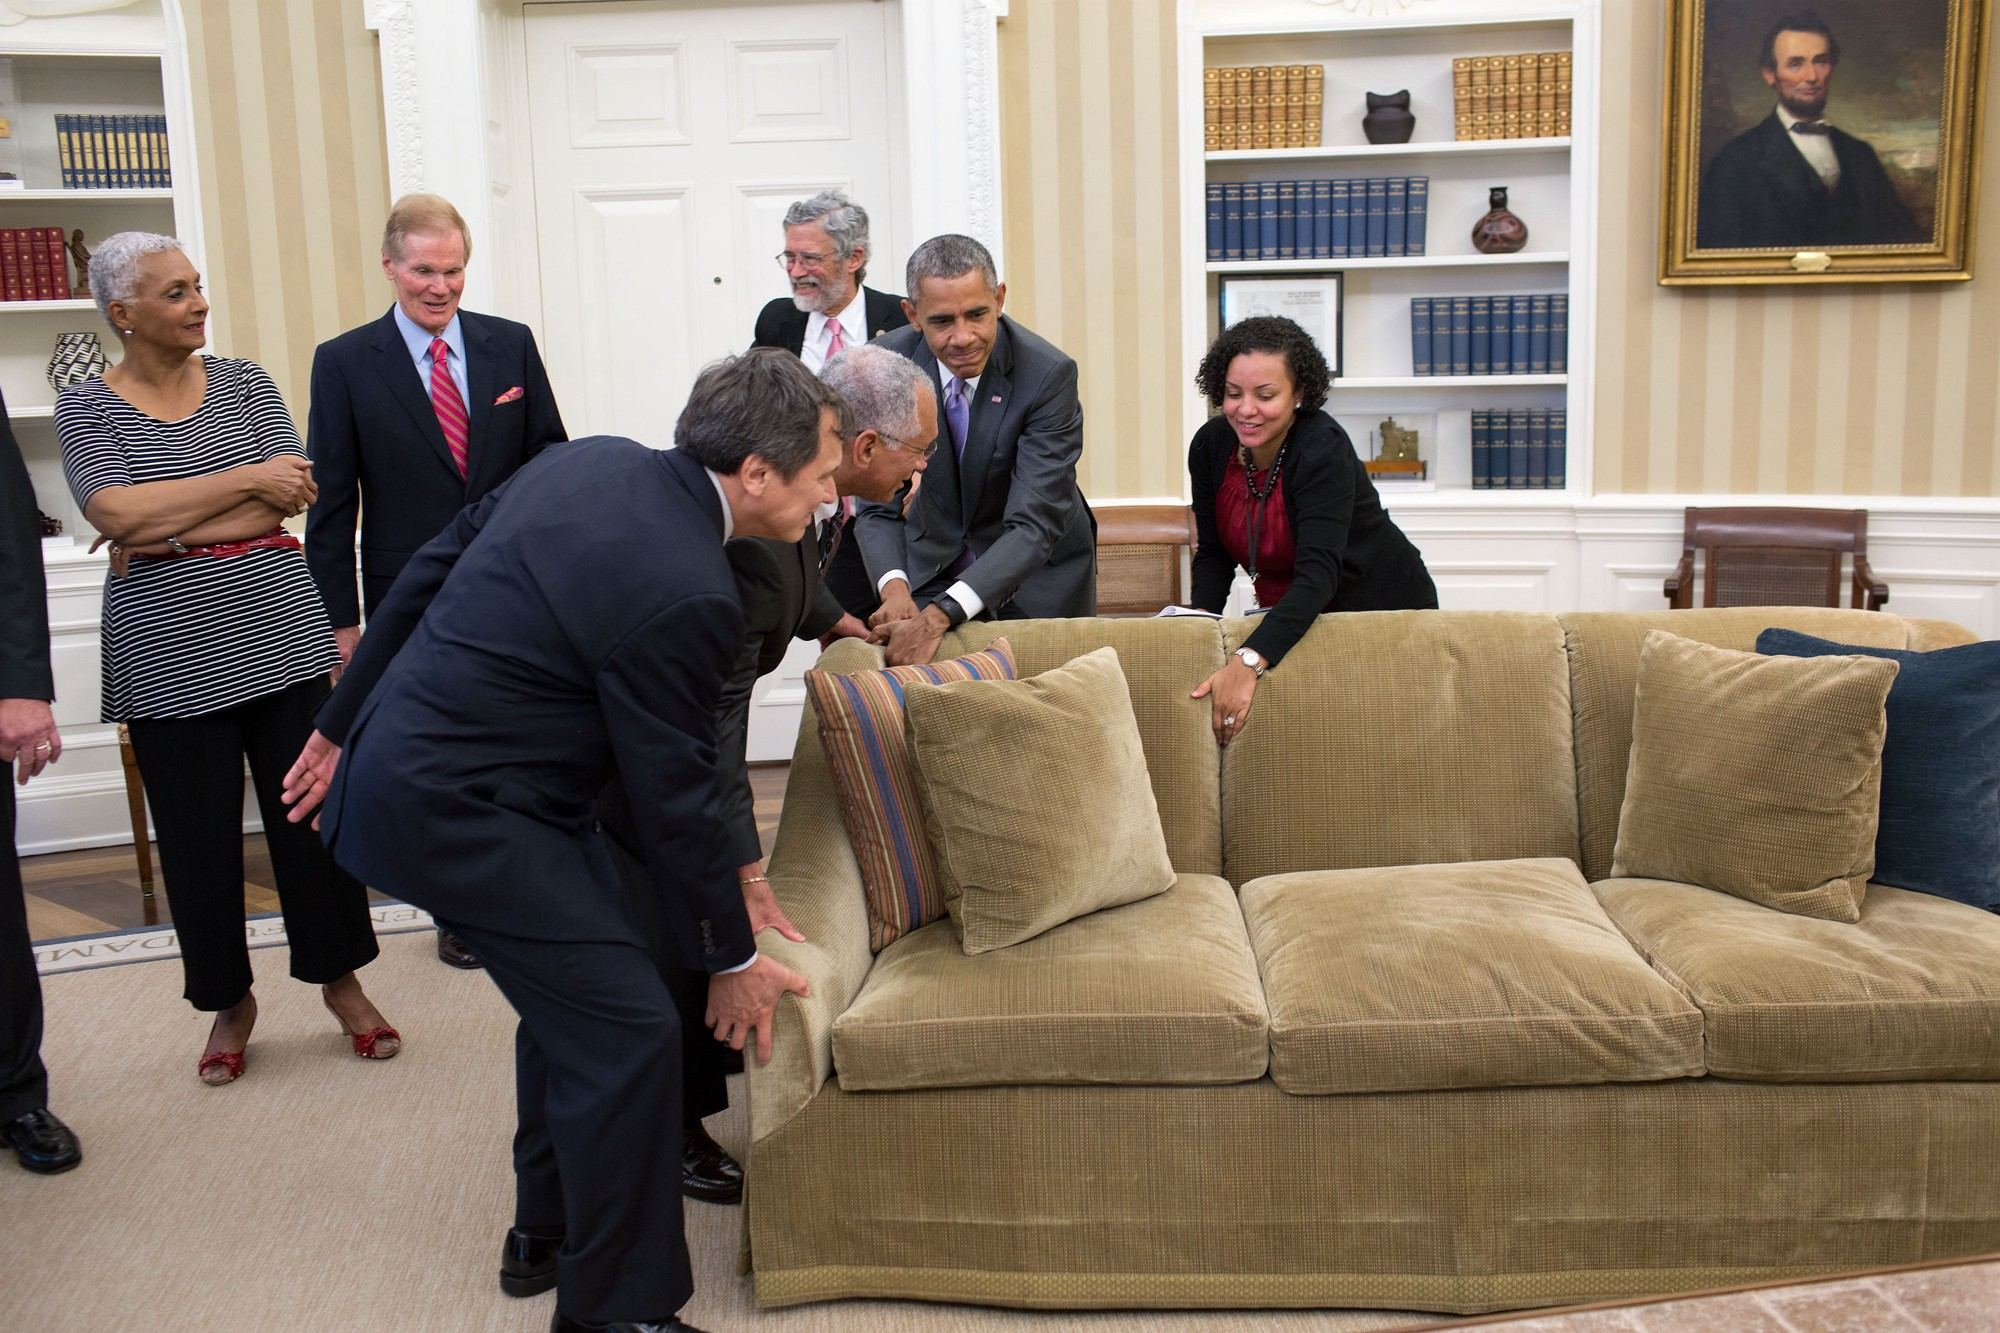 Photo taken on June 9, 2105 by Official White House Photo, Pete Souza, features Costa Rica's Franklin Chang